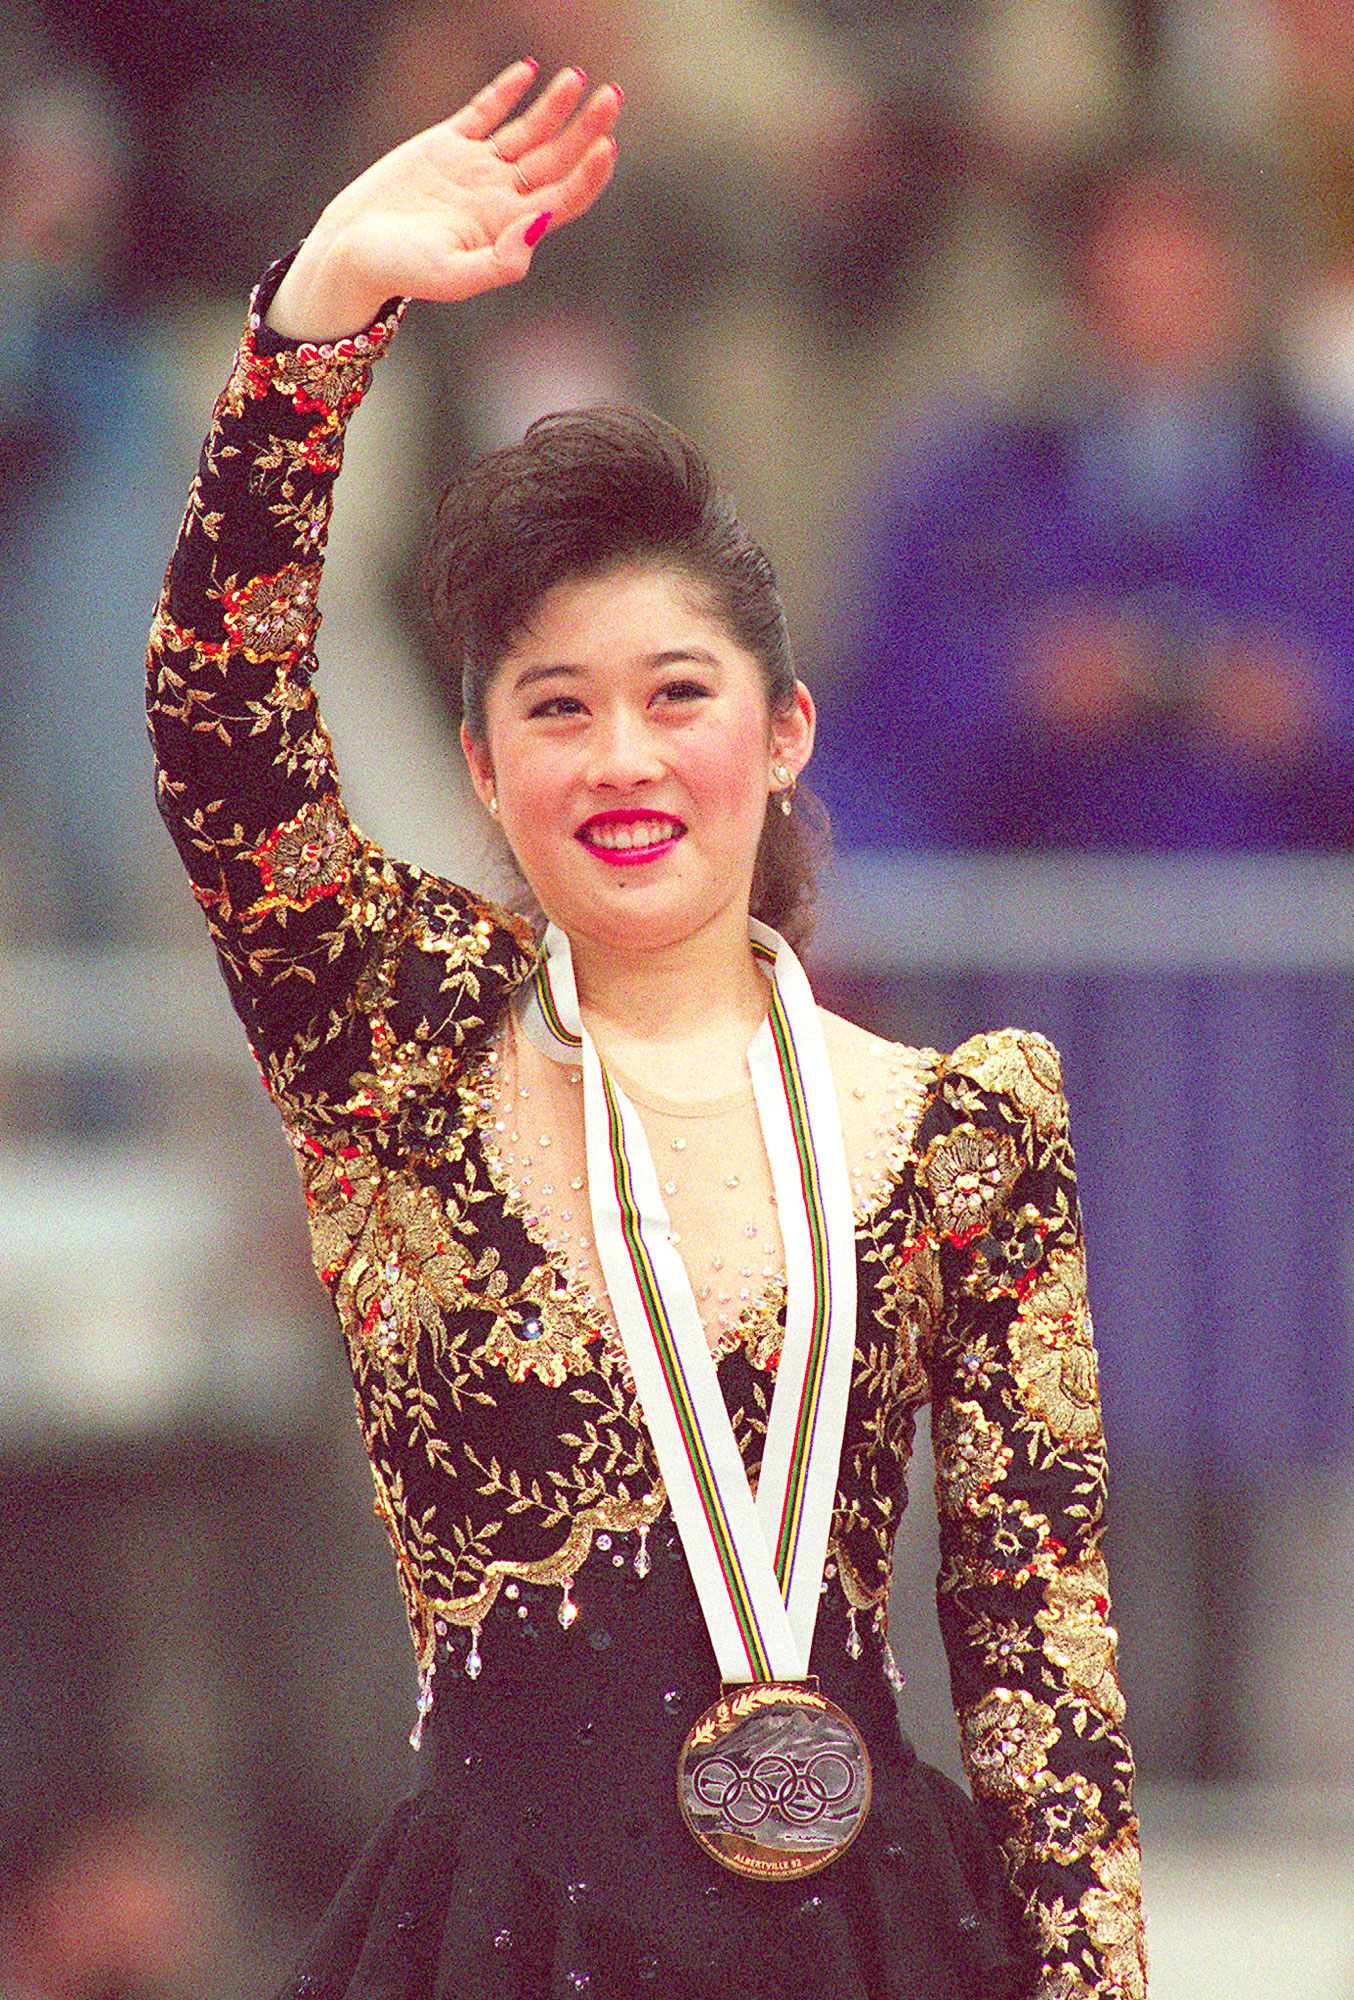 Kristi Yamaguchi from the United States smiles as